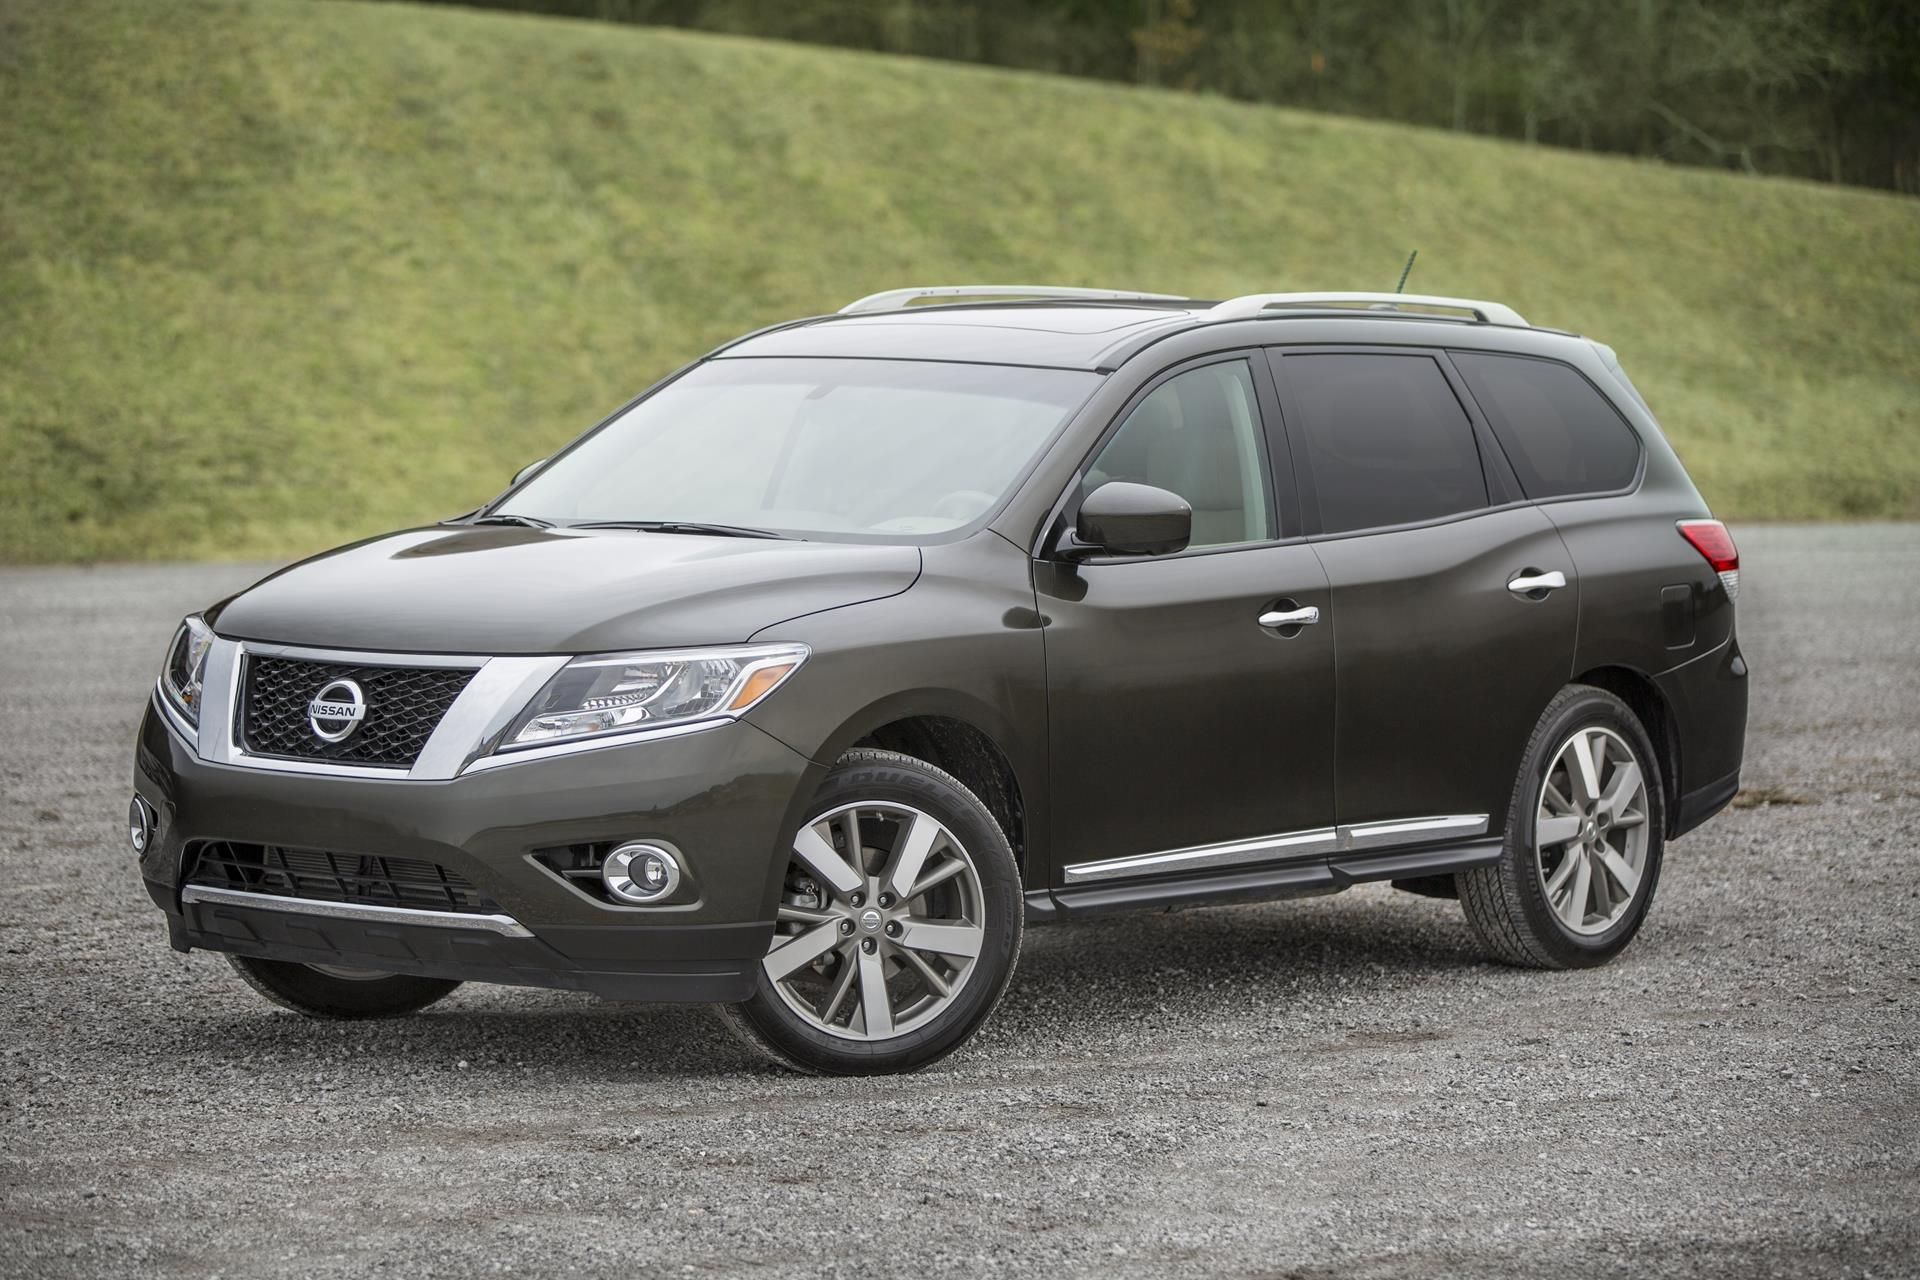 2016 nissan pathfinder news and information. Black Bedroom Furniture Sets. Home Design Ideas